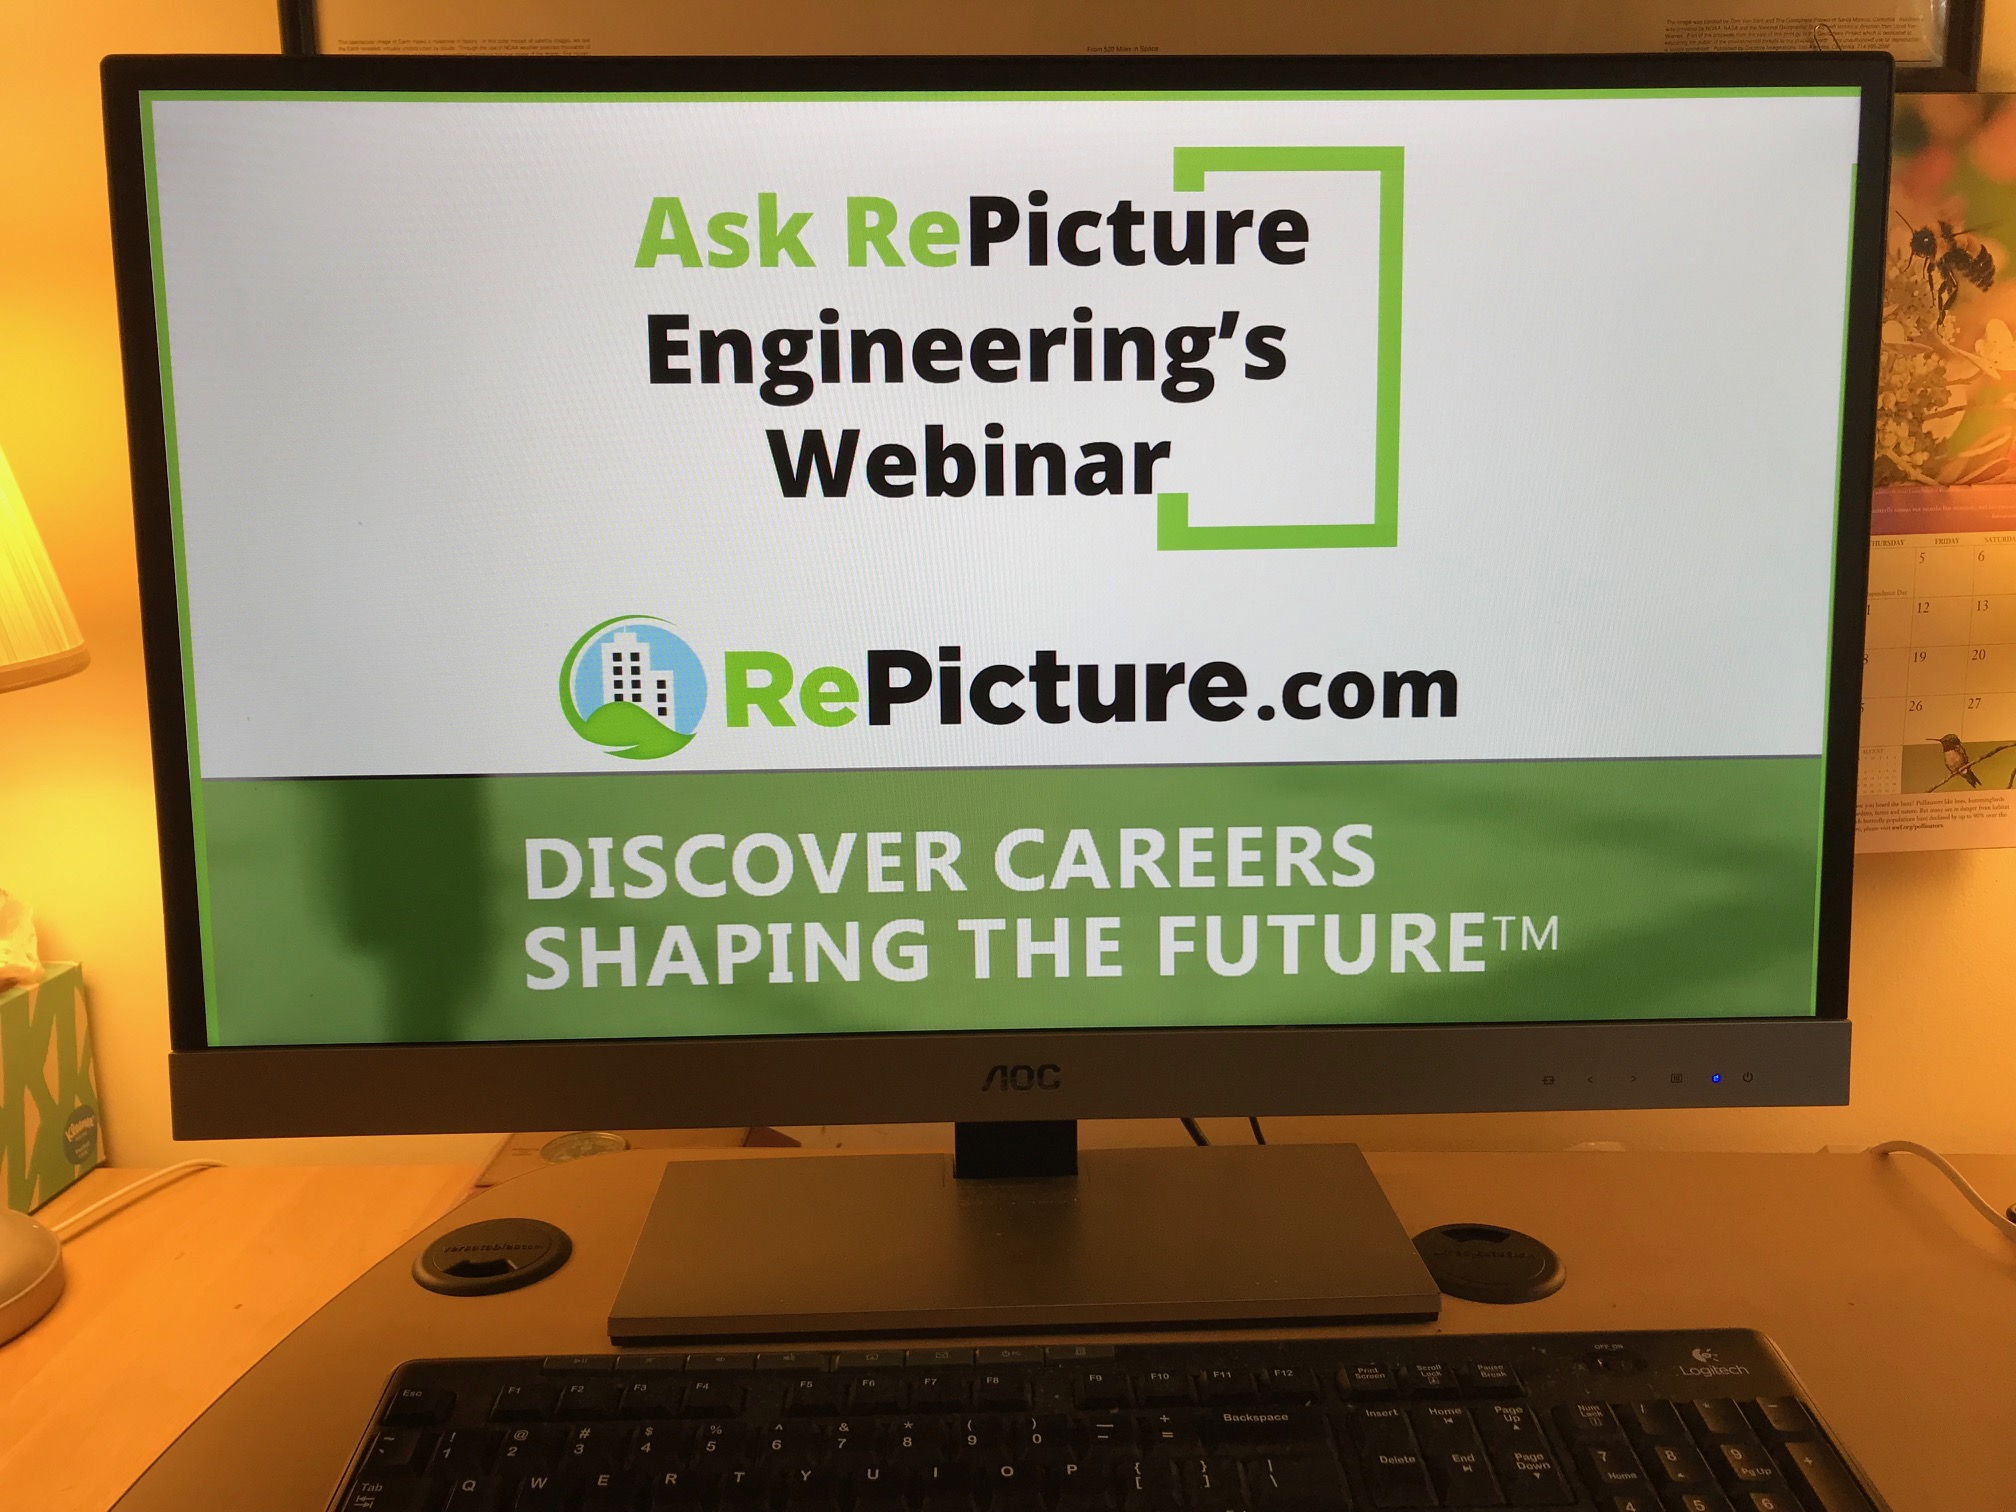 Computer screen of Ask RePicture Webinar for engineering career advice